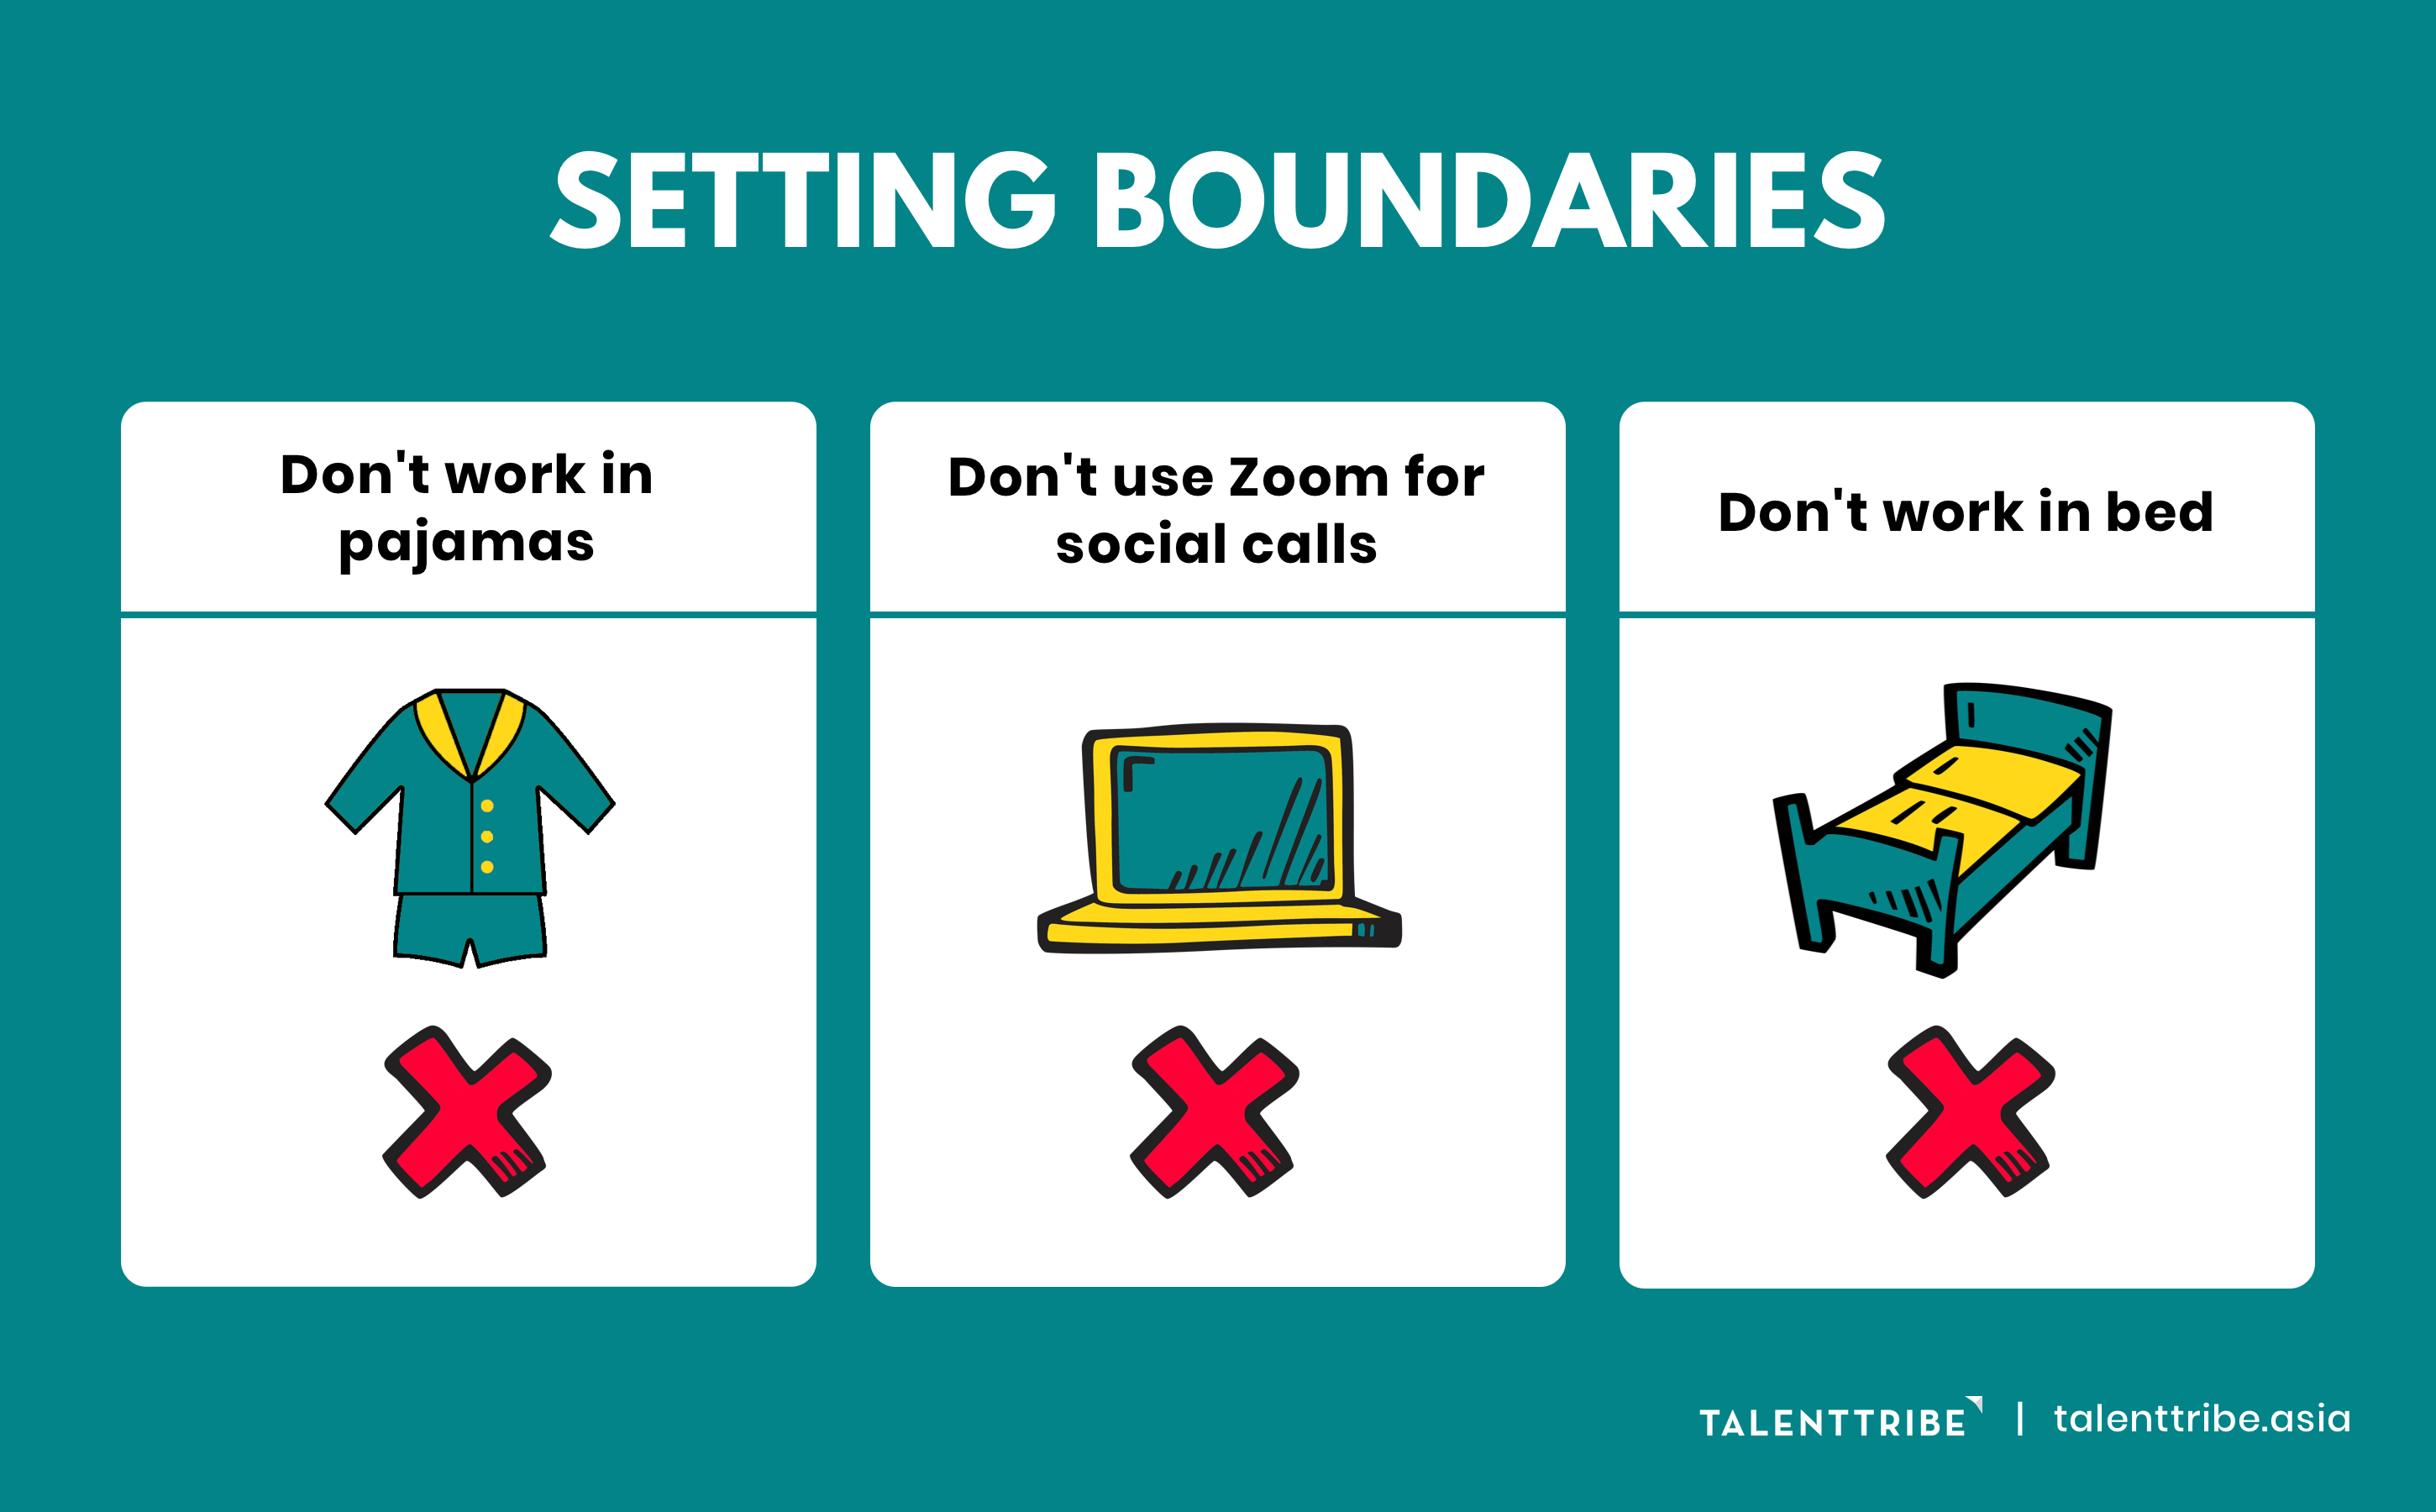 Setting Boundaries - Don't work in pajamas, Don't use zoom for social calls; Don't work in bed